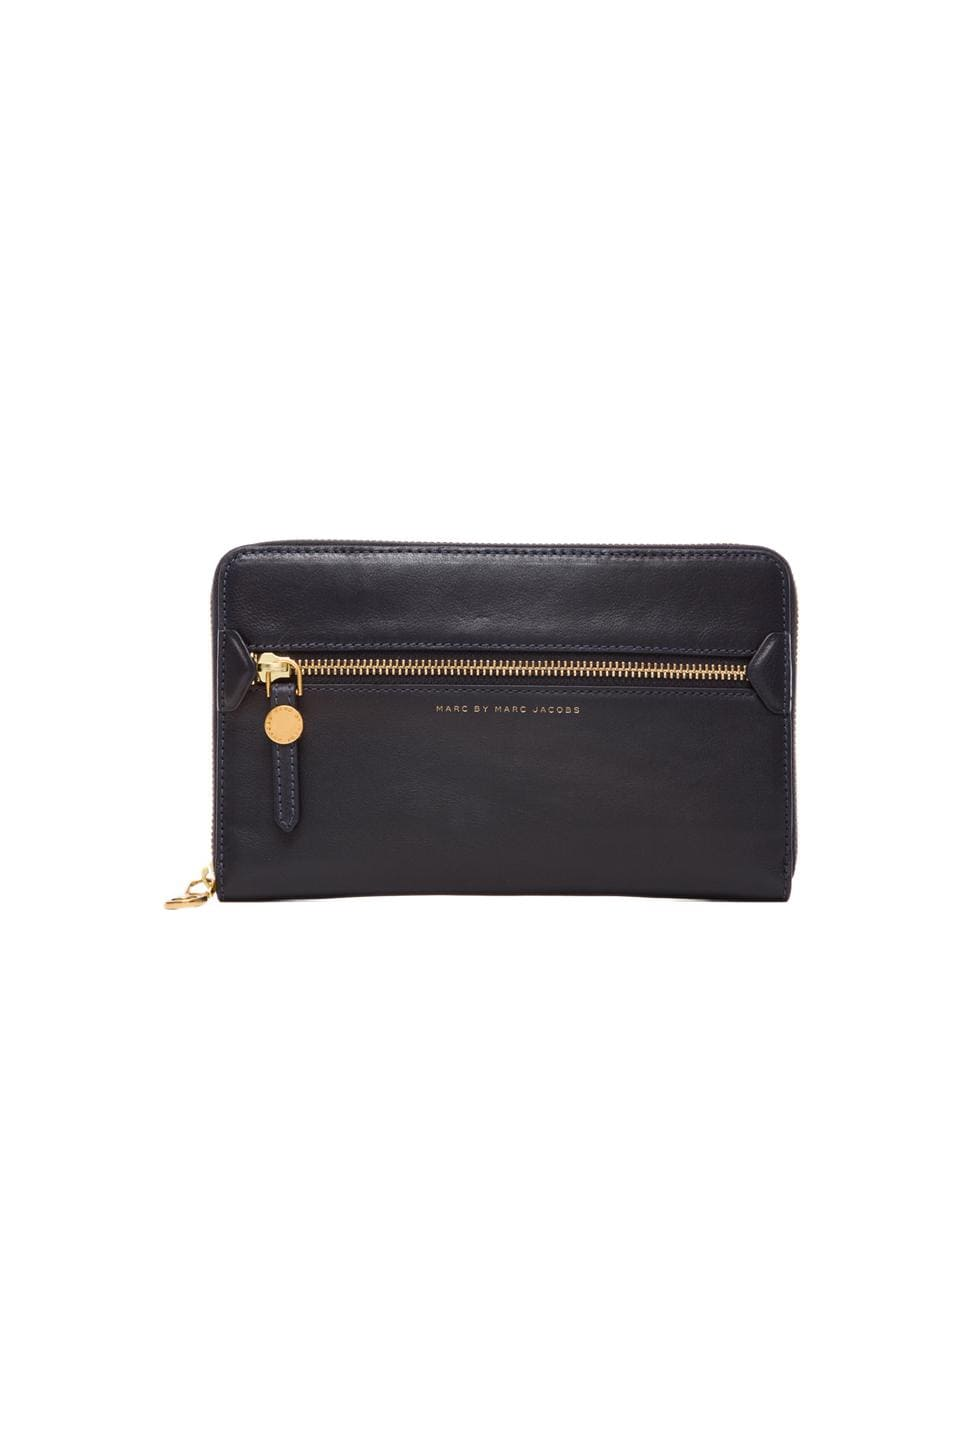 Marc by Marc Jacobs Globetrotter Travel Wallet in Midnight Navy